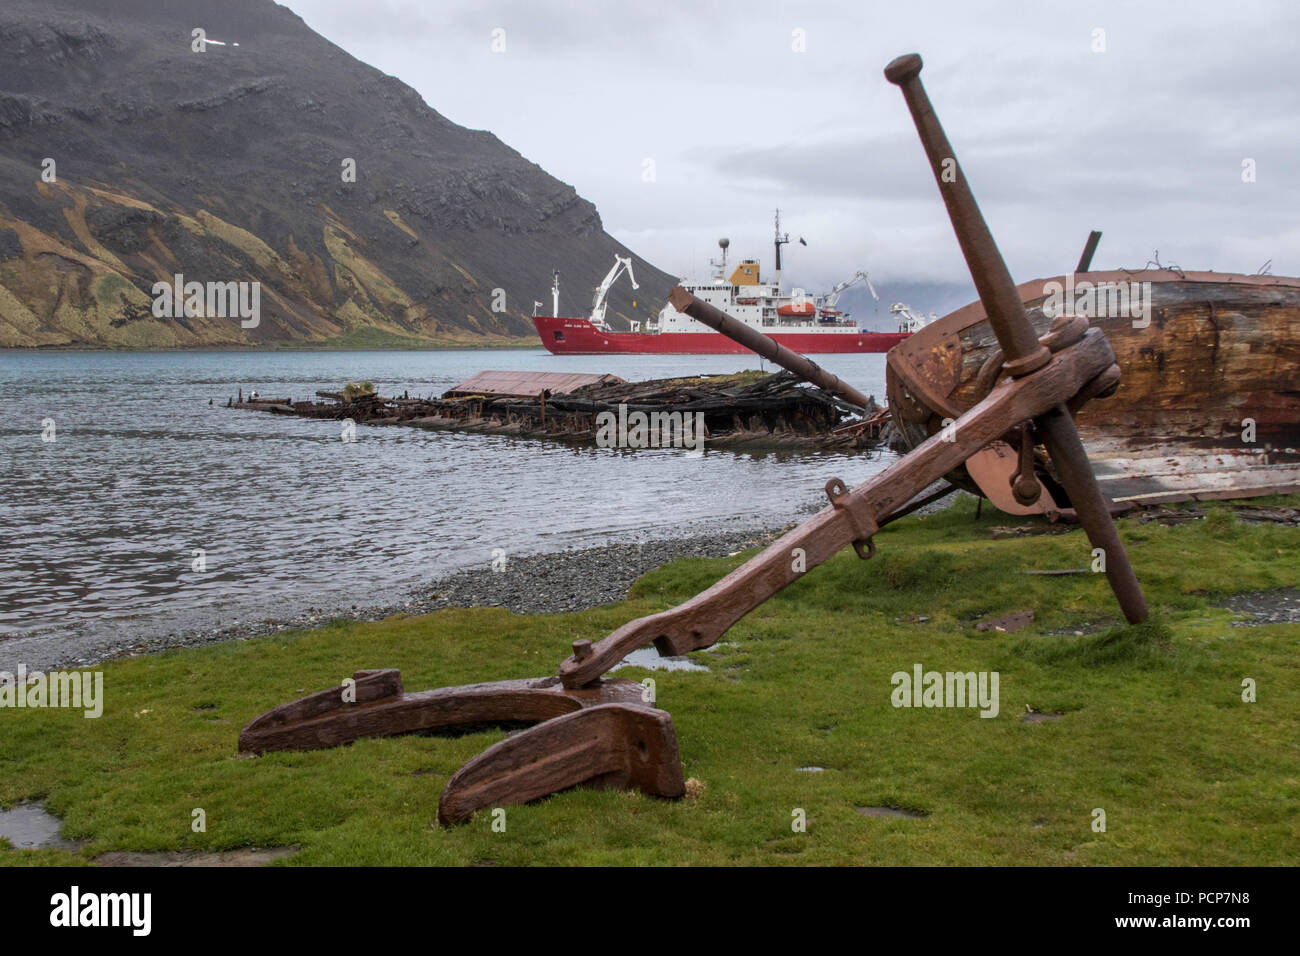 Wreckage at abandoned whaling station in the South Georgia Islands - Stock Image